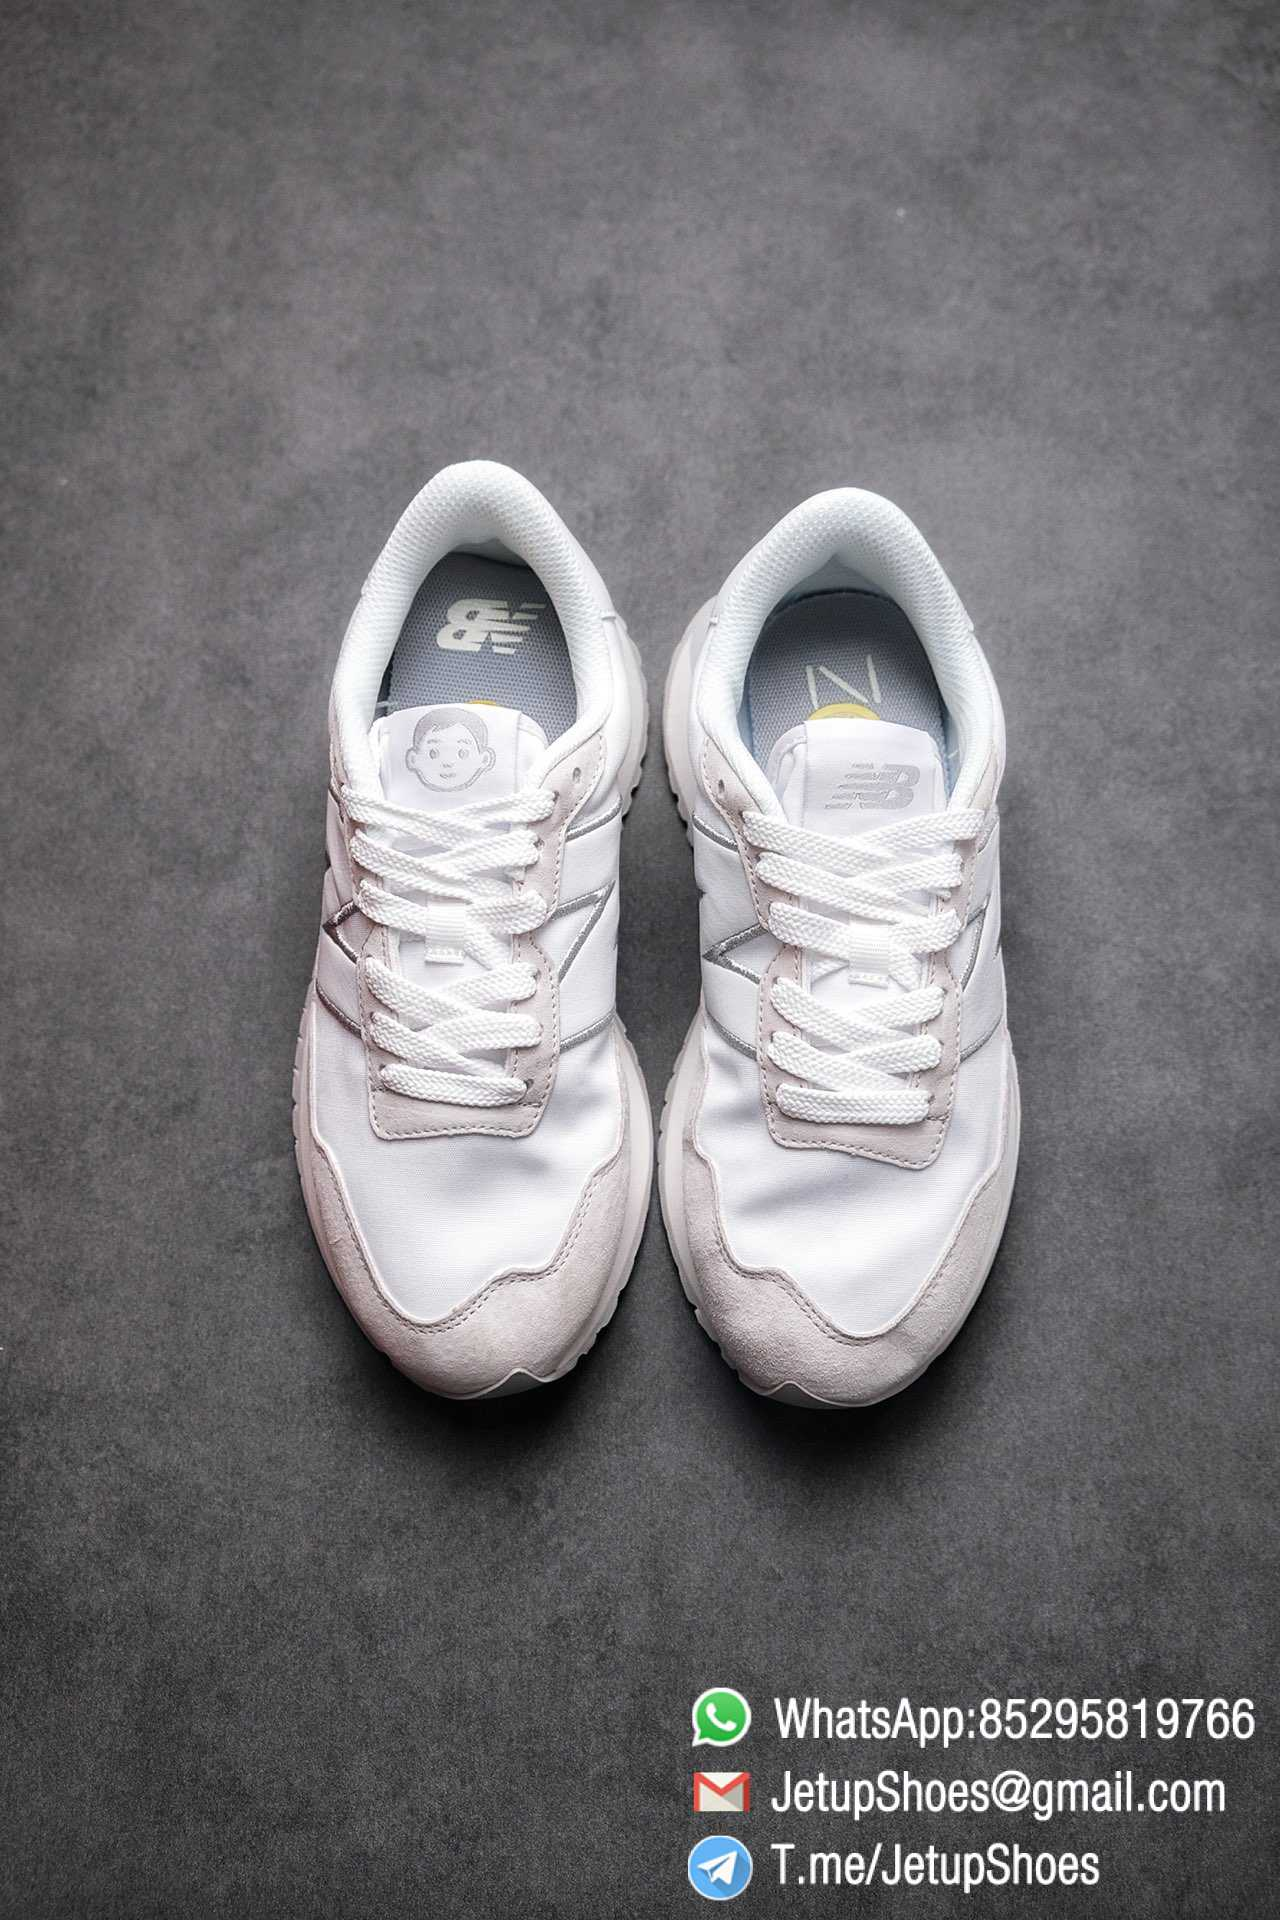 Best Replica 2021 New Balance 237 White Light Grey SKU MS237NW1 High Quality Running Sneakers 02